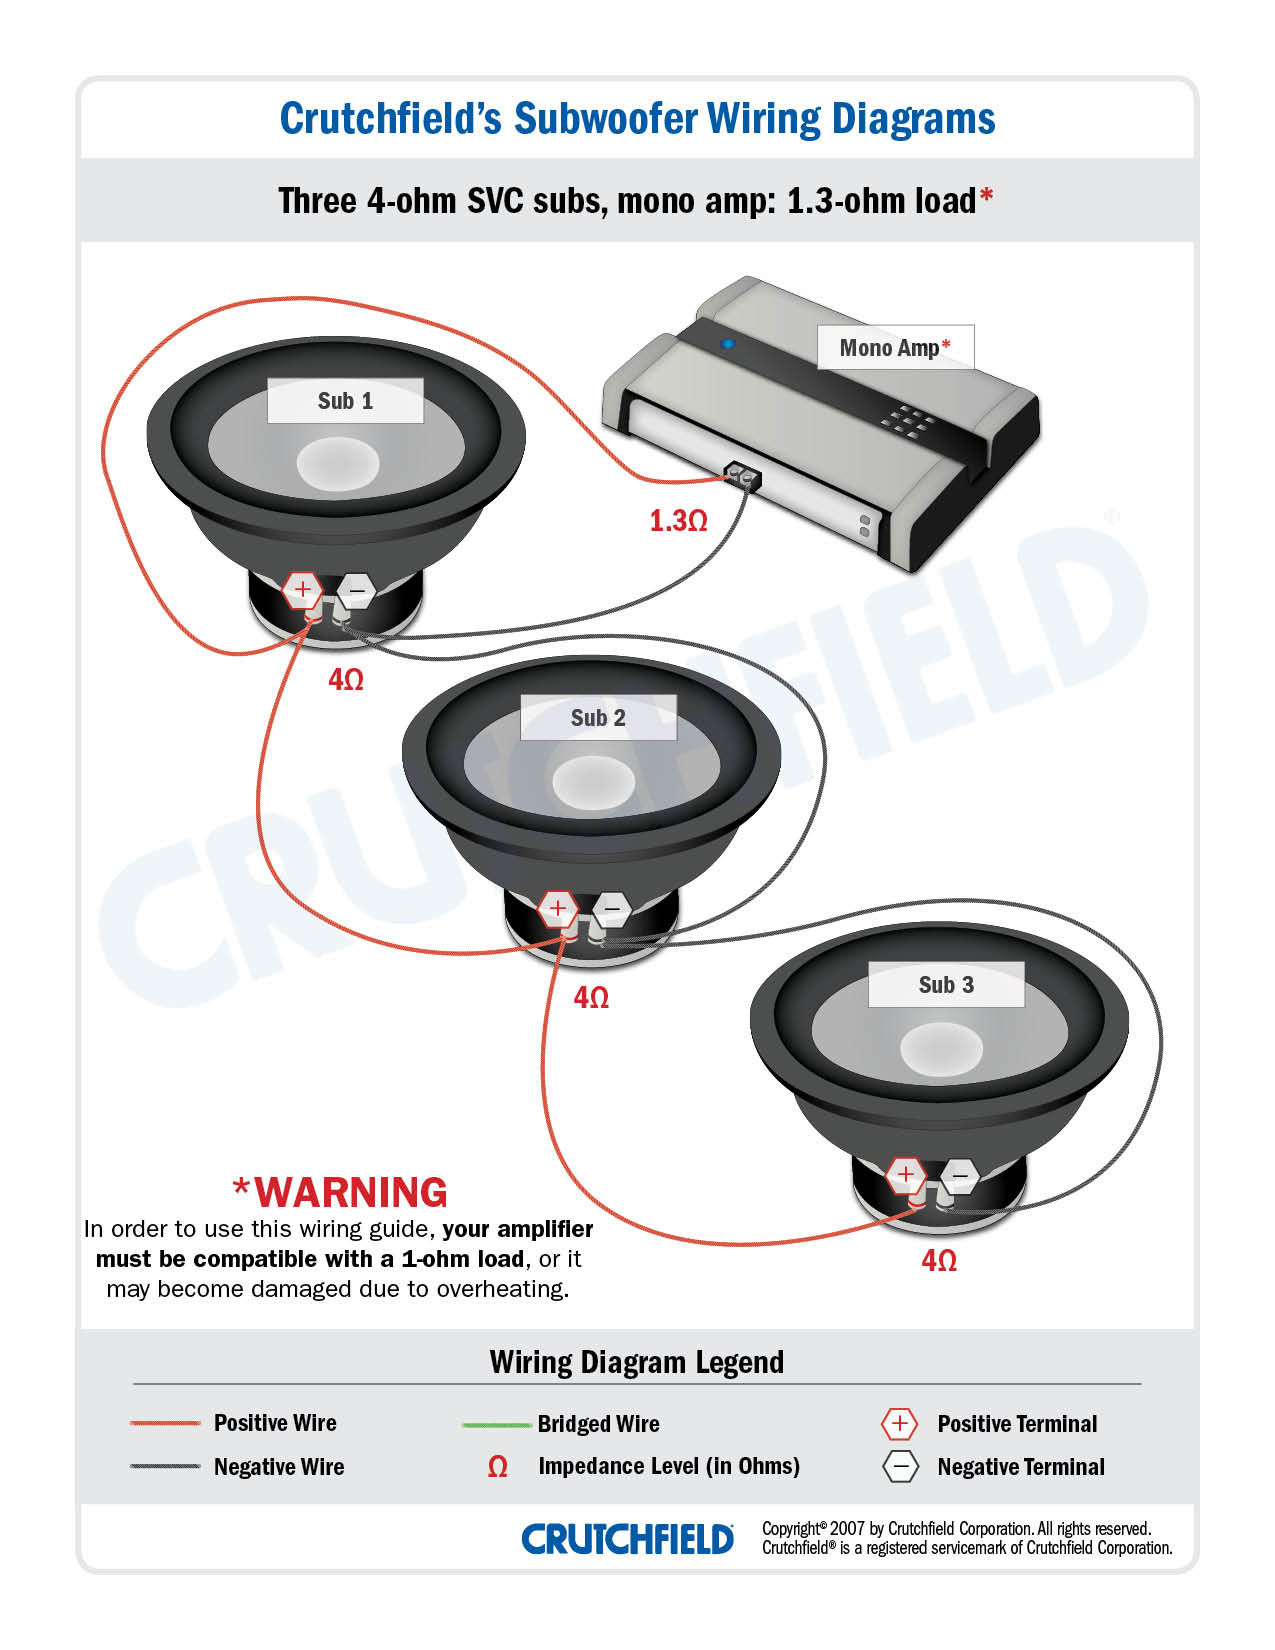 subwoofer wiring diagrams rh crutchfield com single voice coil subwoofer wiring diagram single voice coil 4 ohm subwoofer wiring